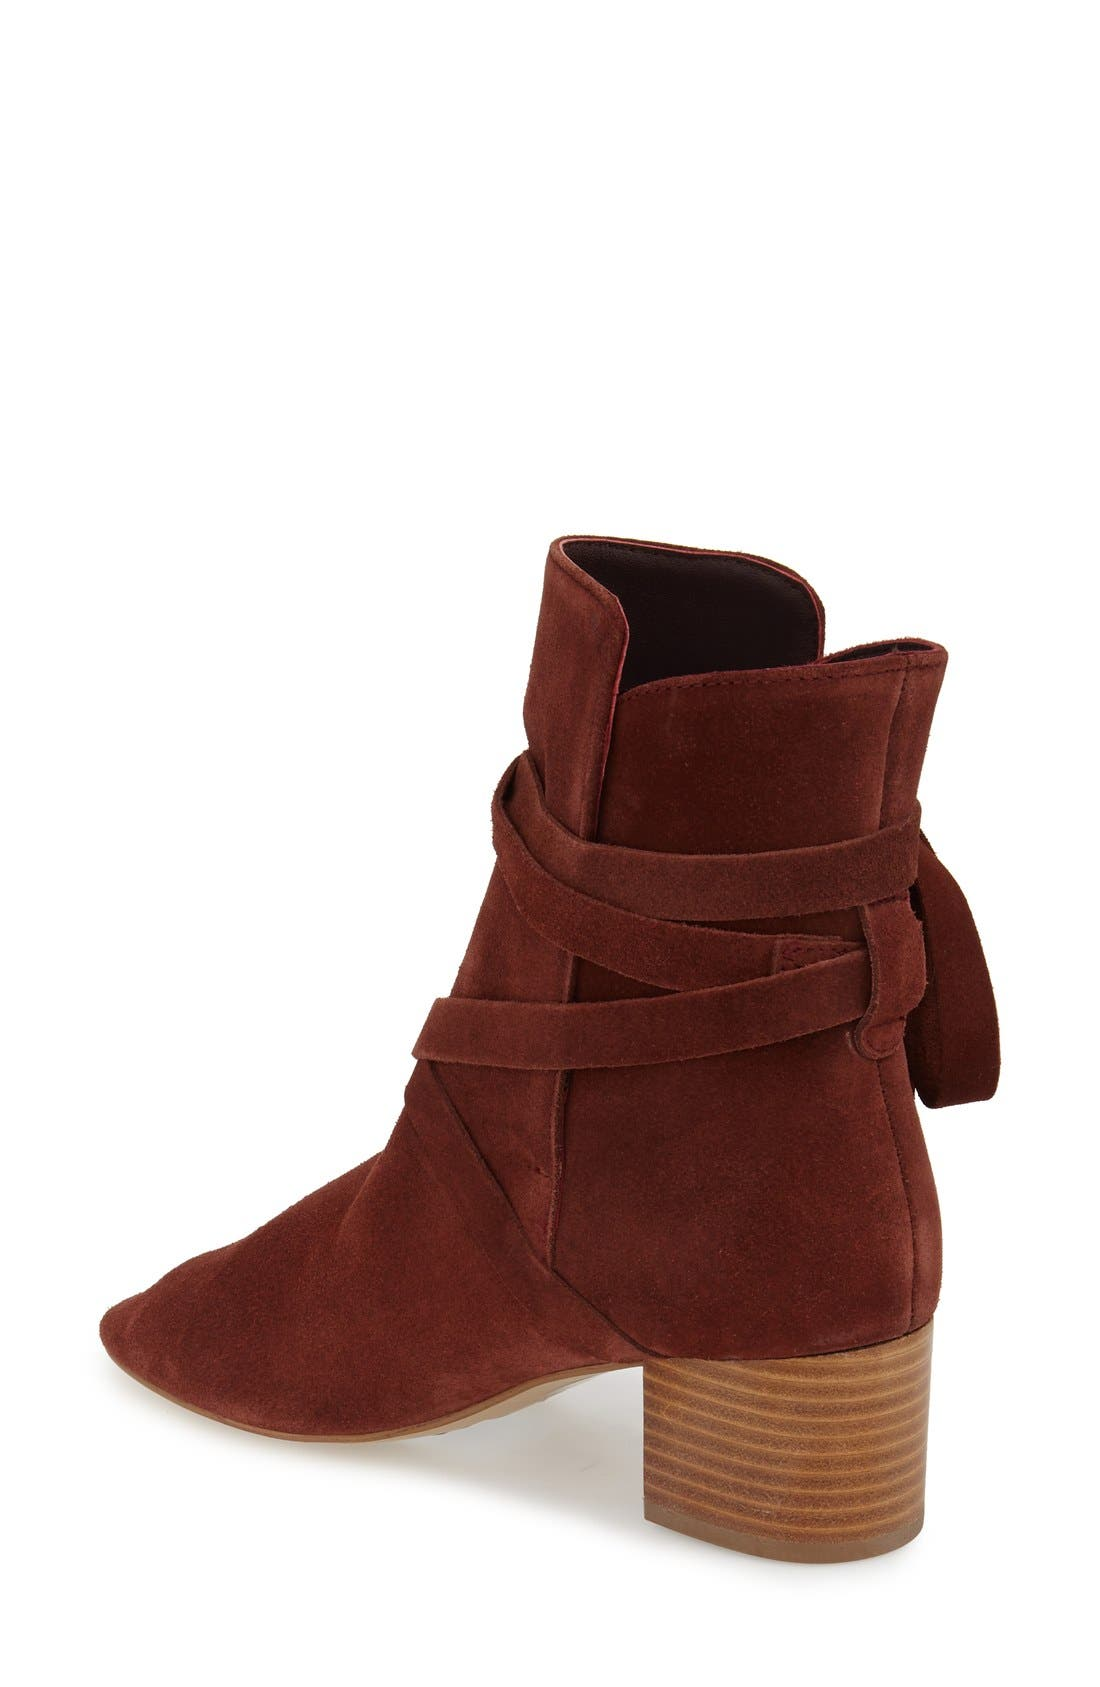 'Anabel' Lace-Up Boots,                             Alternate thumbnail 2, color,                             220